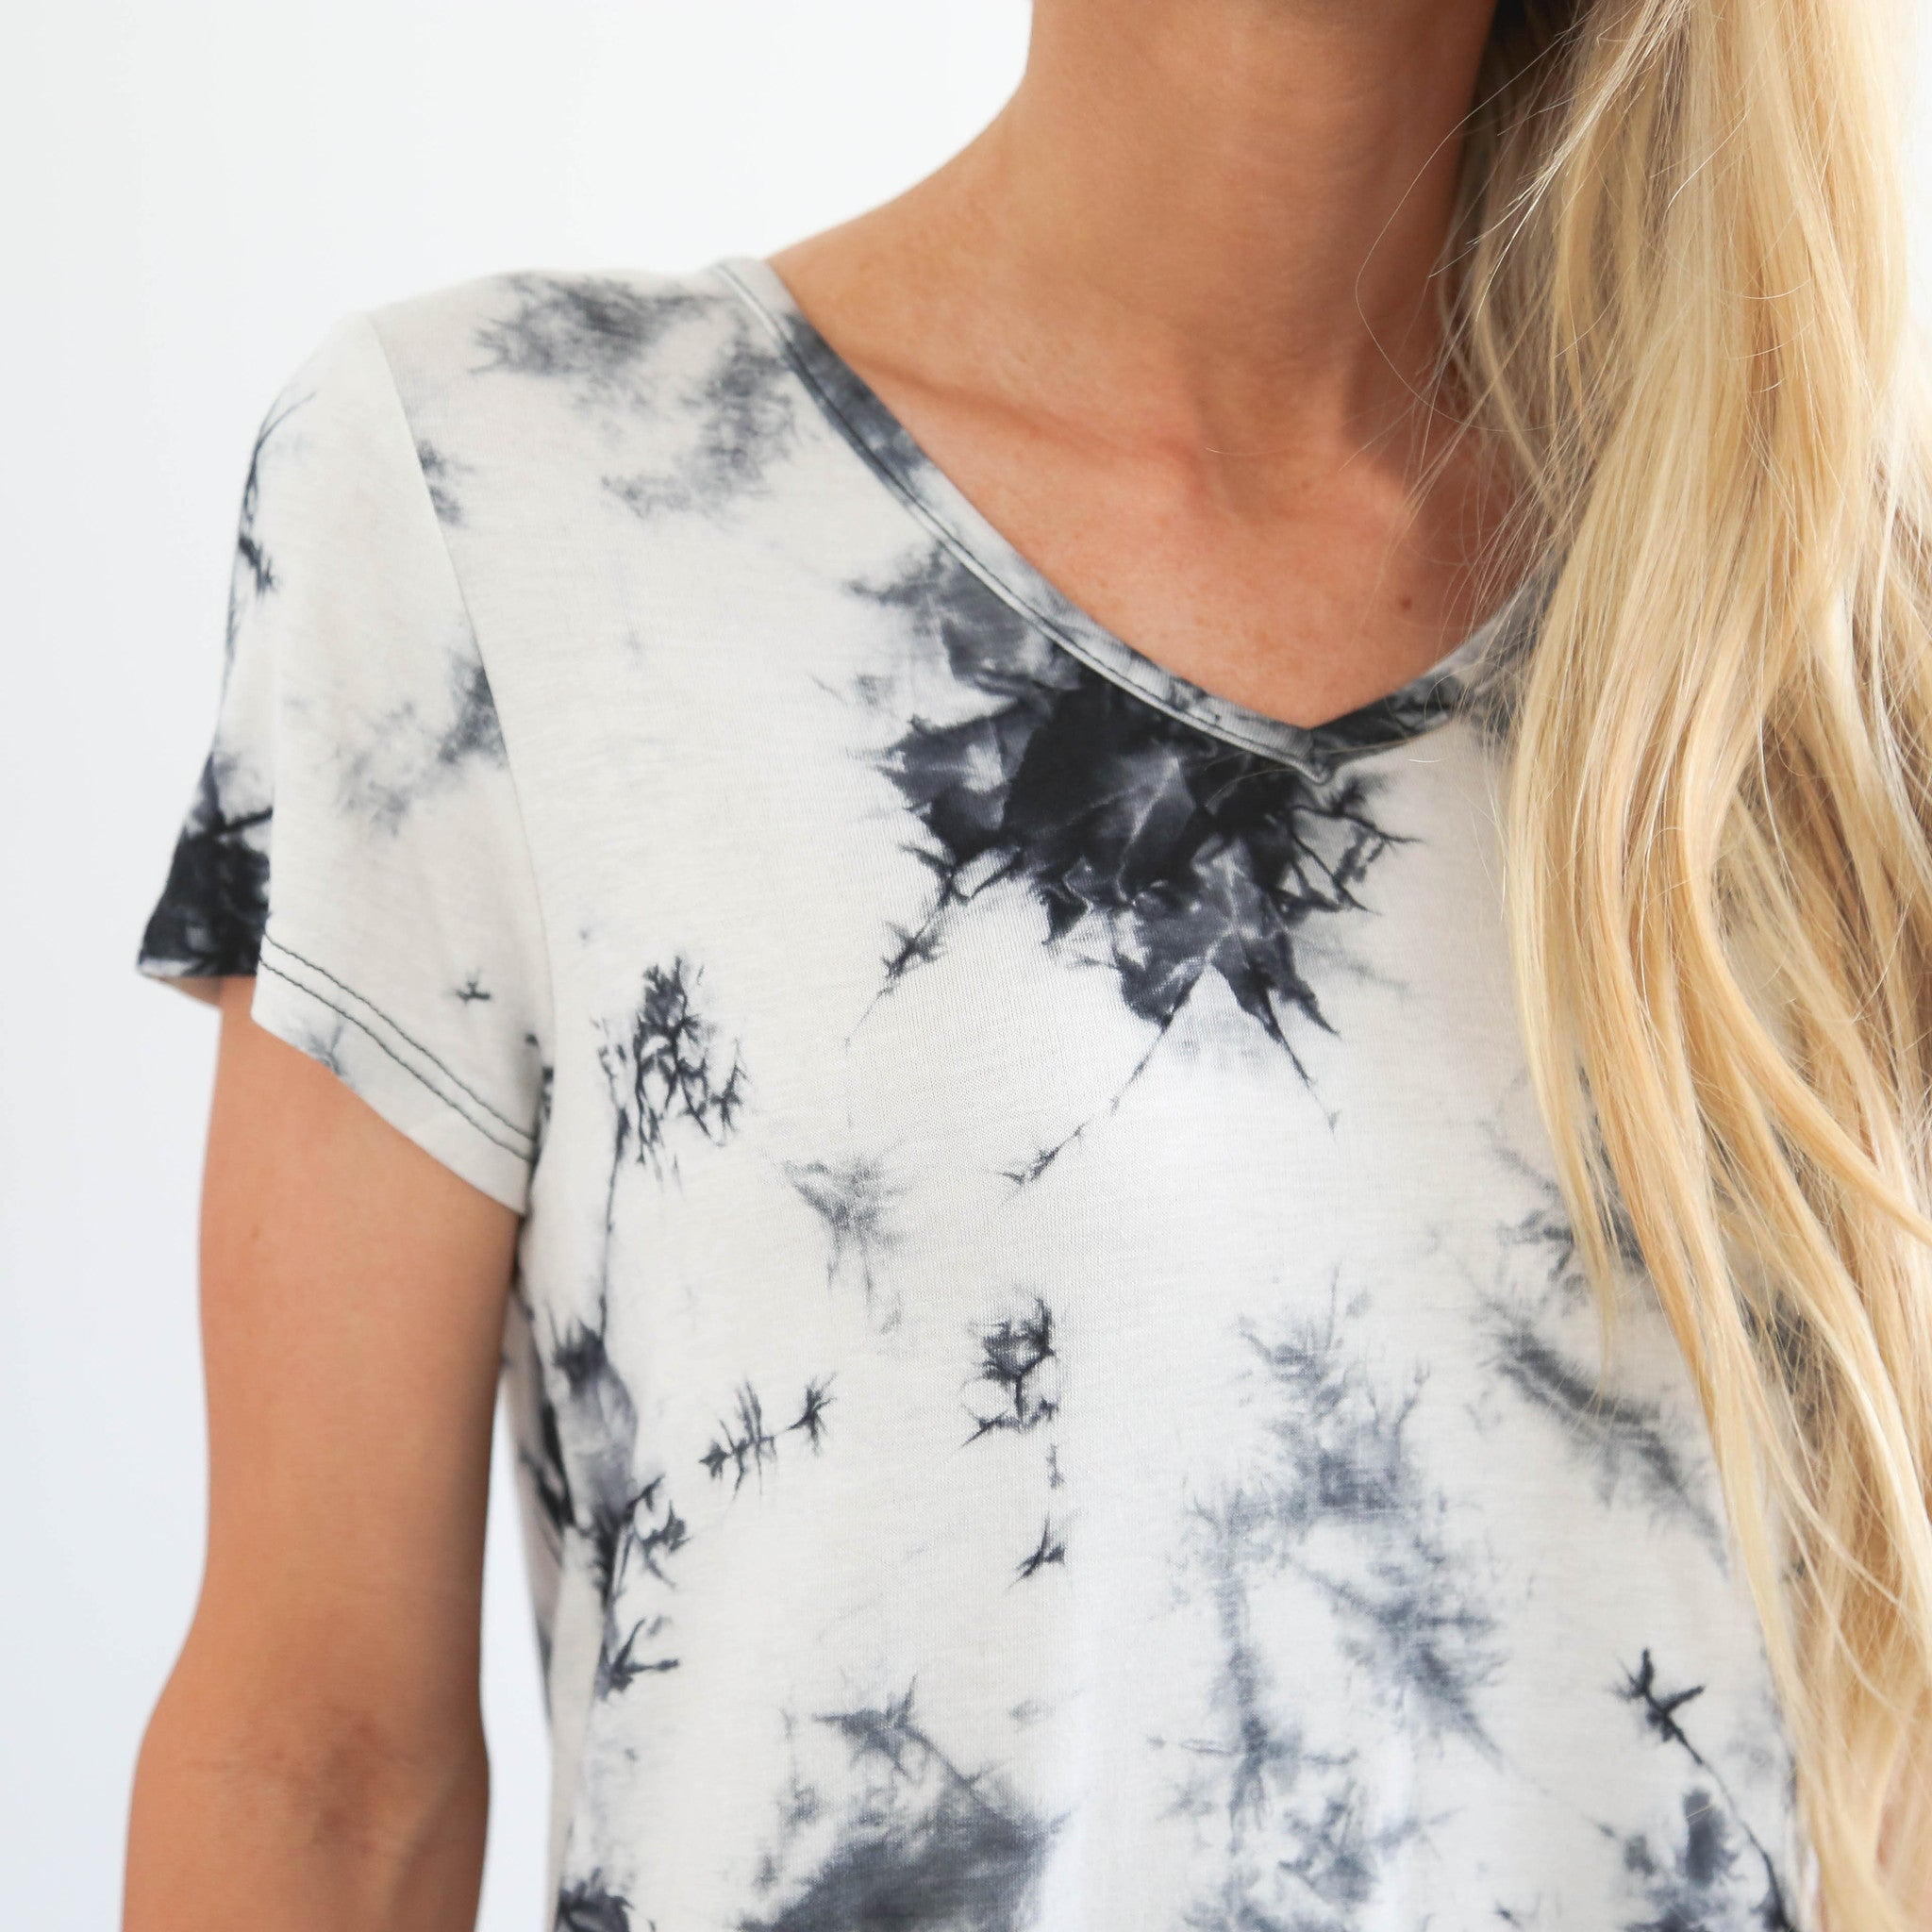 S & Co. Alexa Tie Dye Top